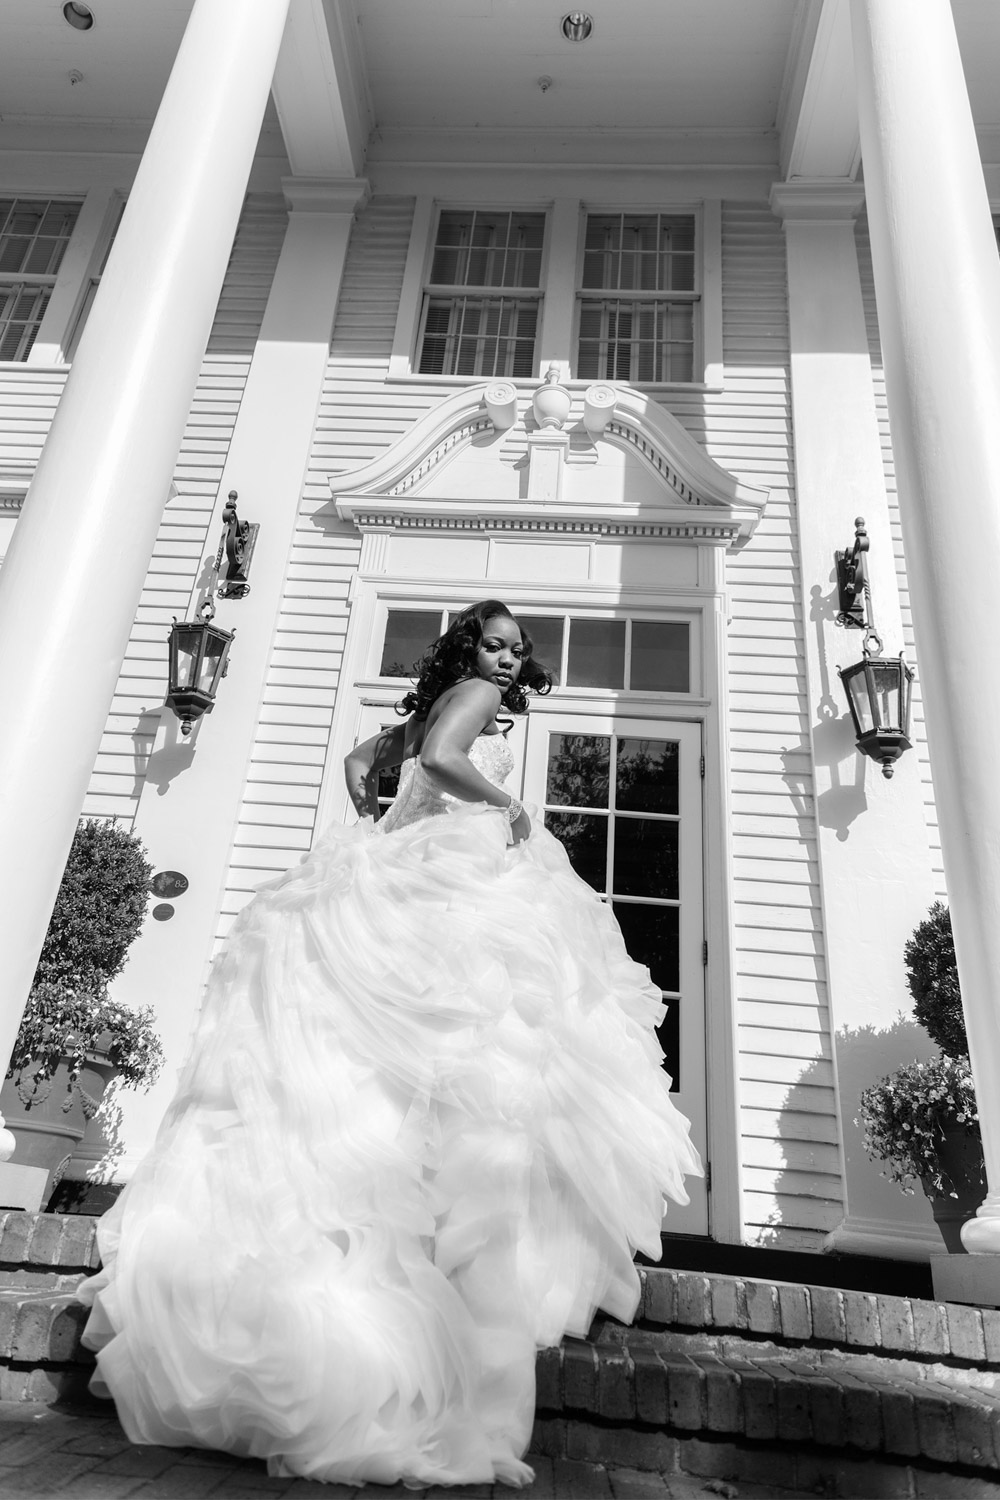 """NATALIE H.- South Carolina   """"Bryan has the ability to put fresh and a new prospective on traditional photographs. The results for my bridal shoot far exceeded all of my expectations. His attention to detail and professionalism are unrivaled. If ever asked, he is always my very first recommendation for a photographer for ANY event or photo session!"""""""